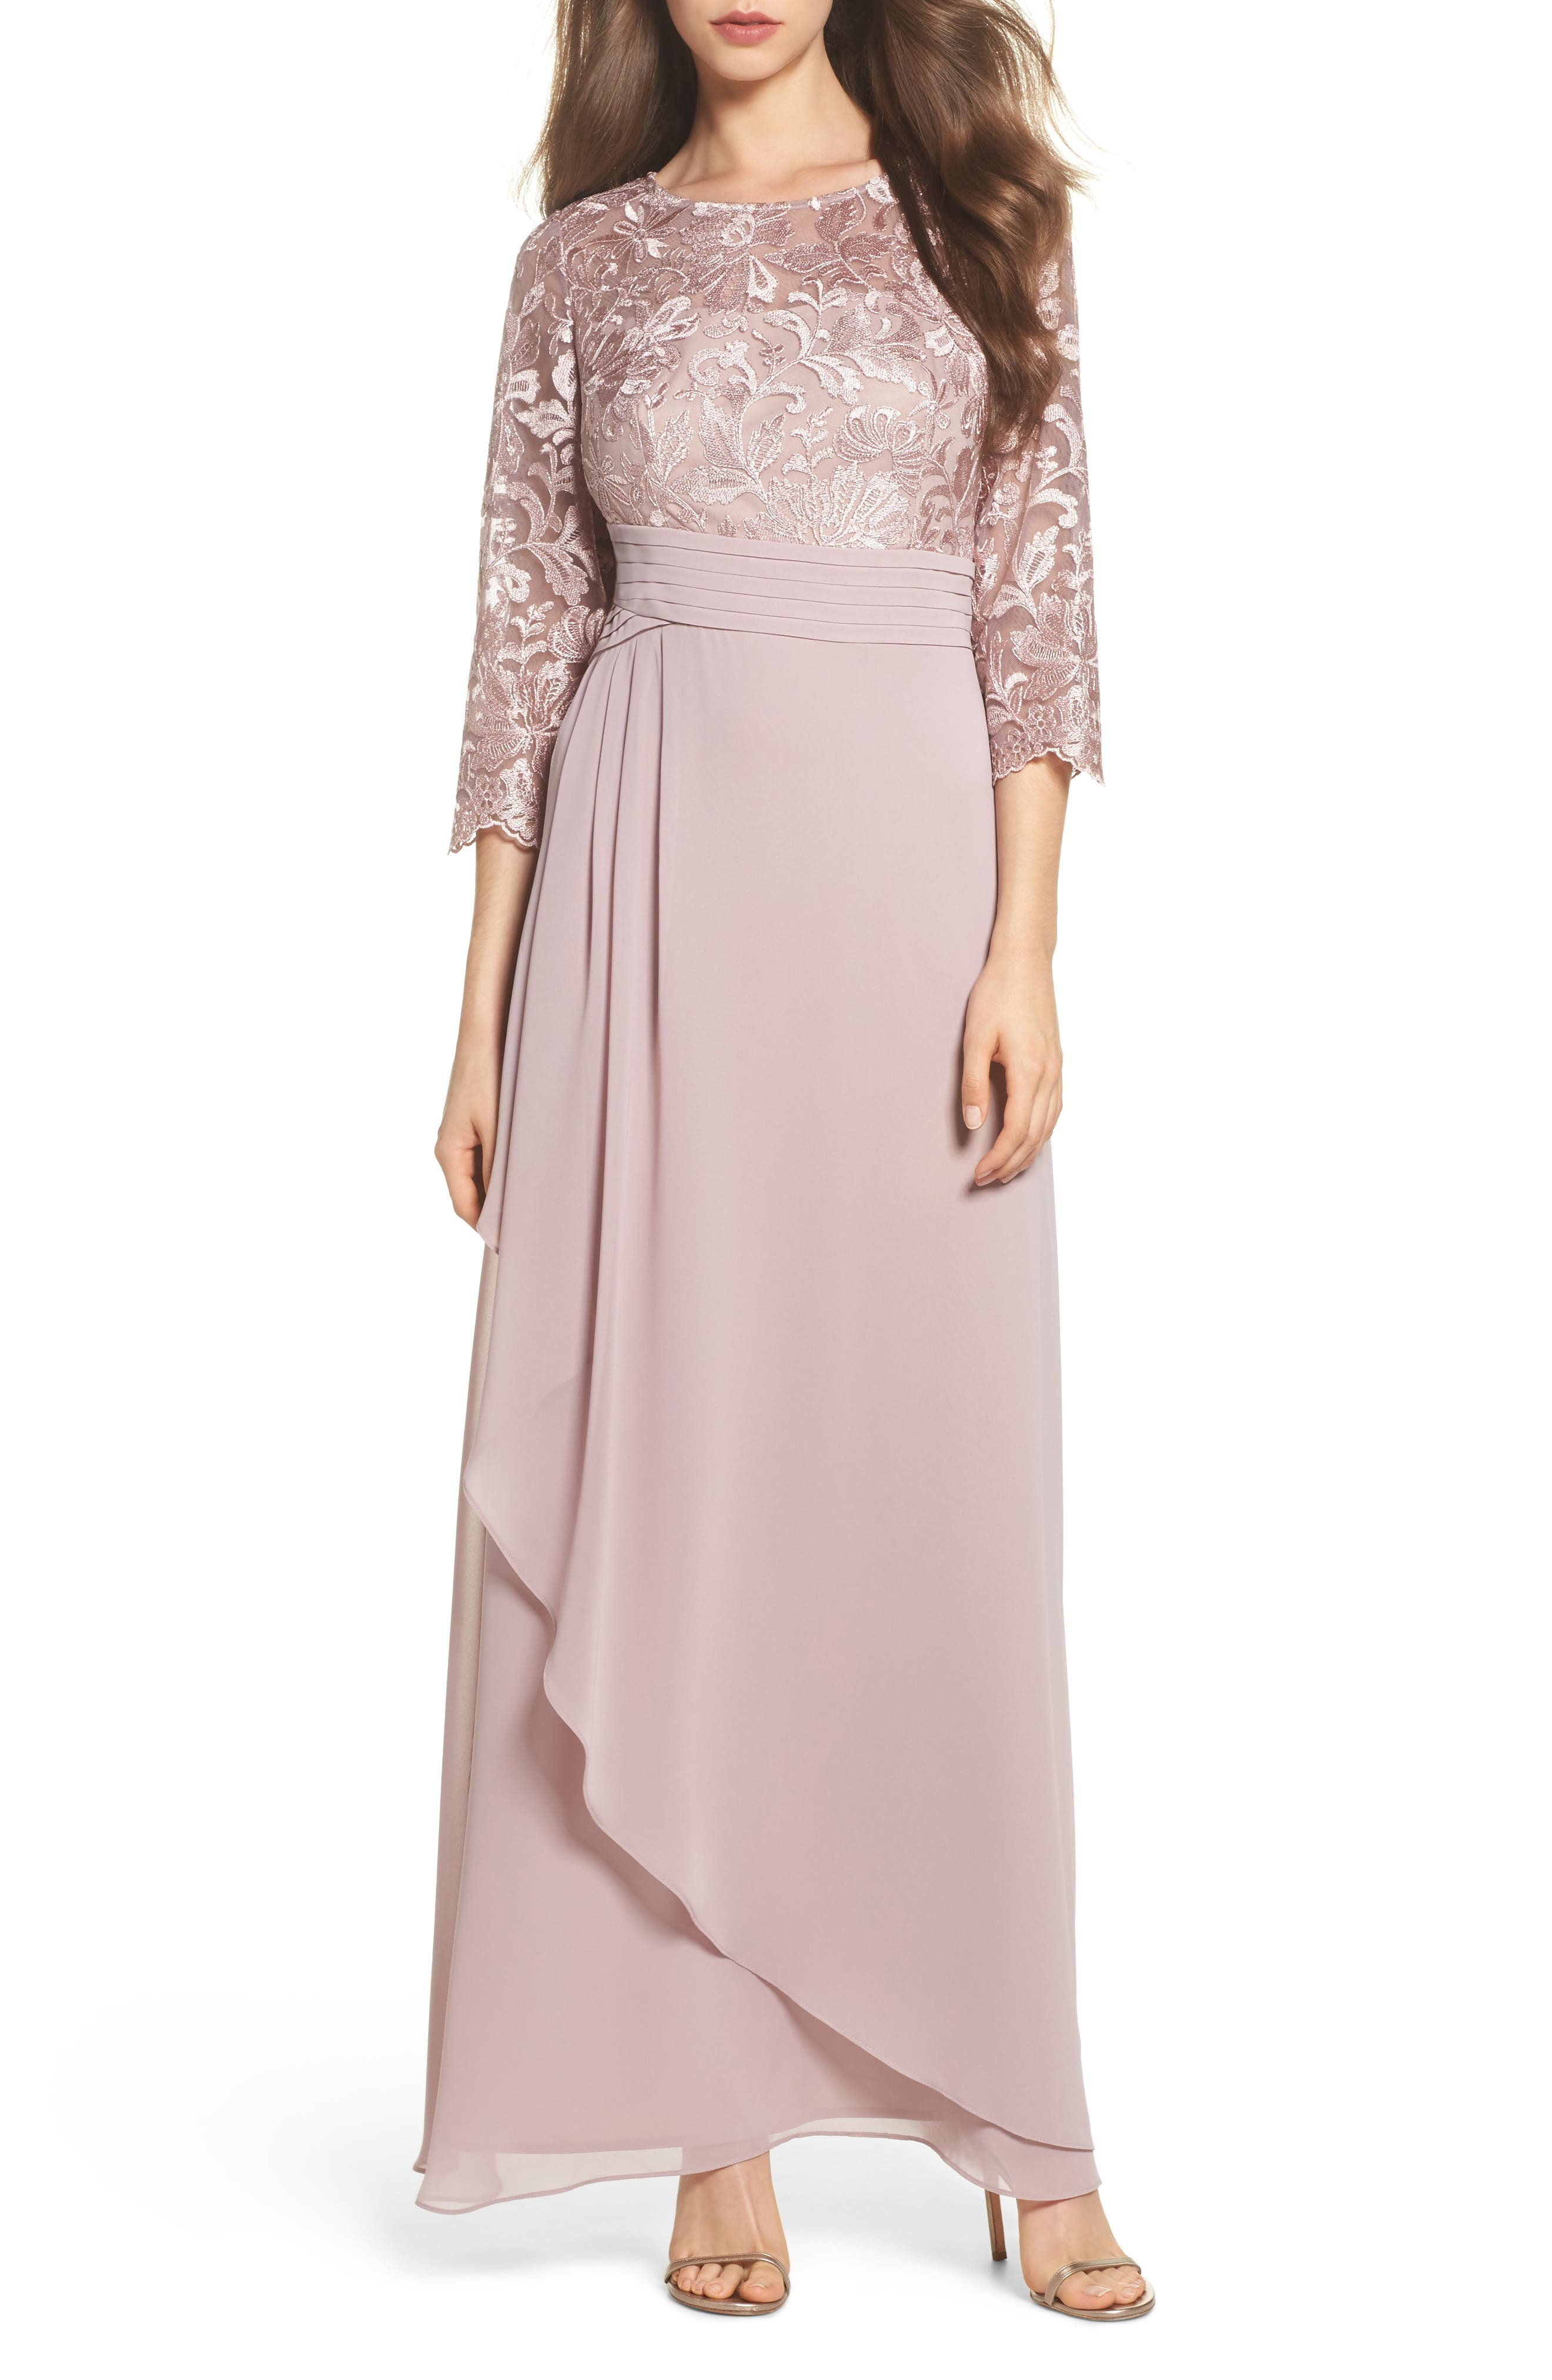 ALEX EVENINGS, Embroidered A-Line Gown, Main thumbnail 1, color, 695